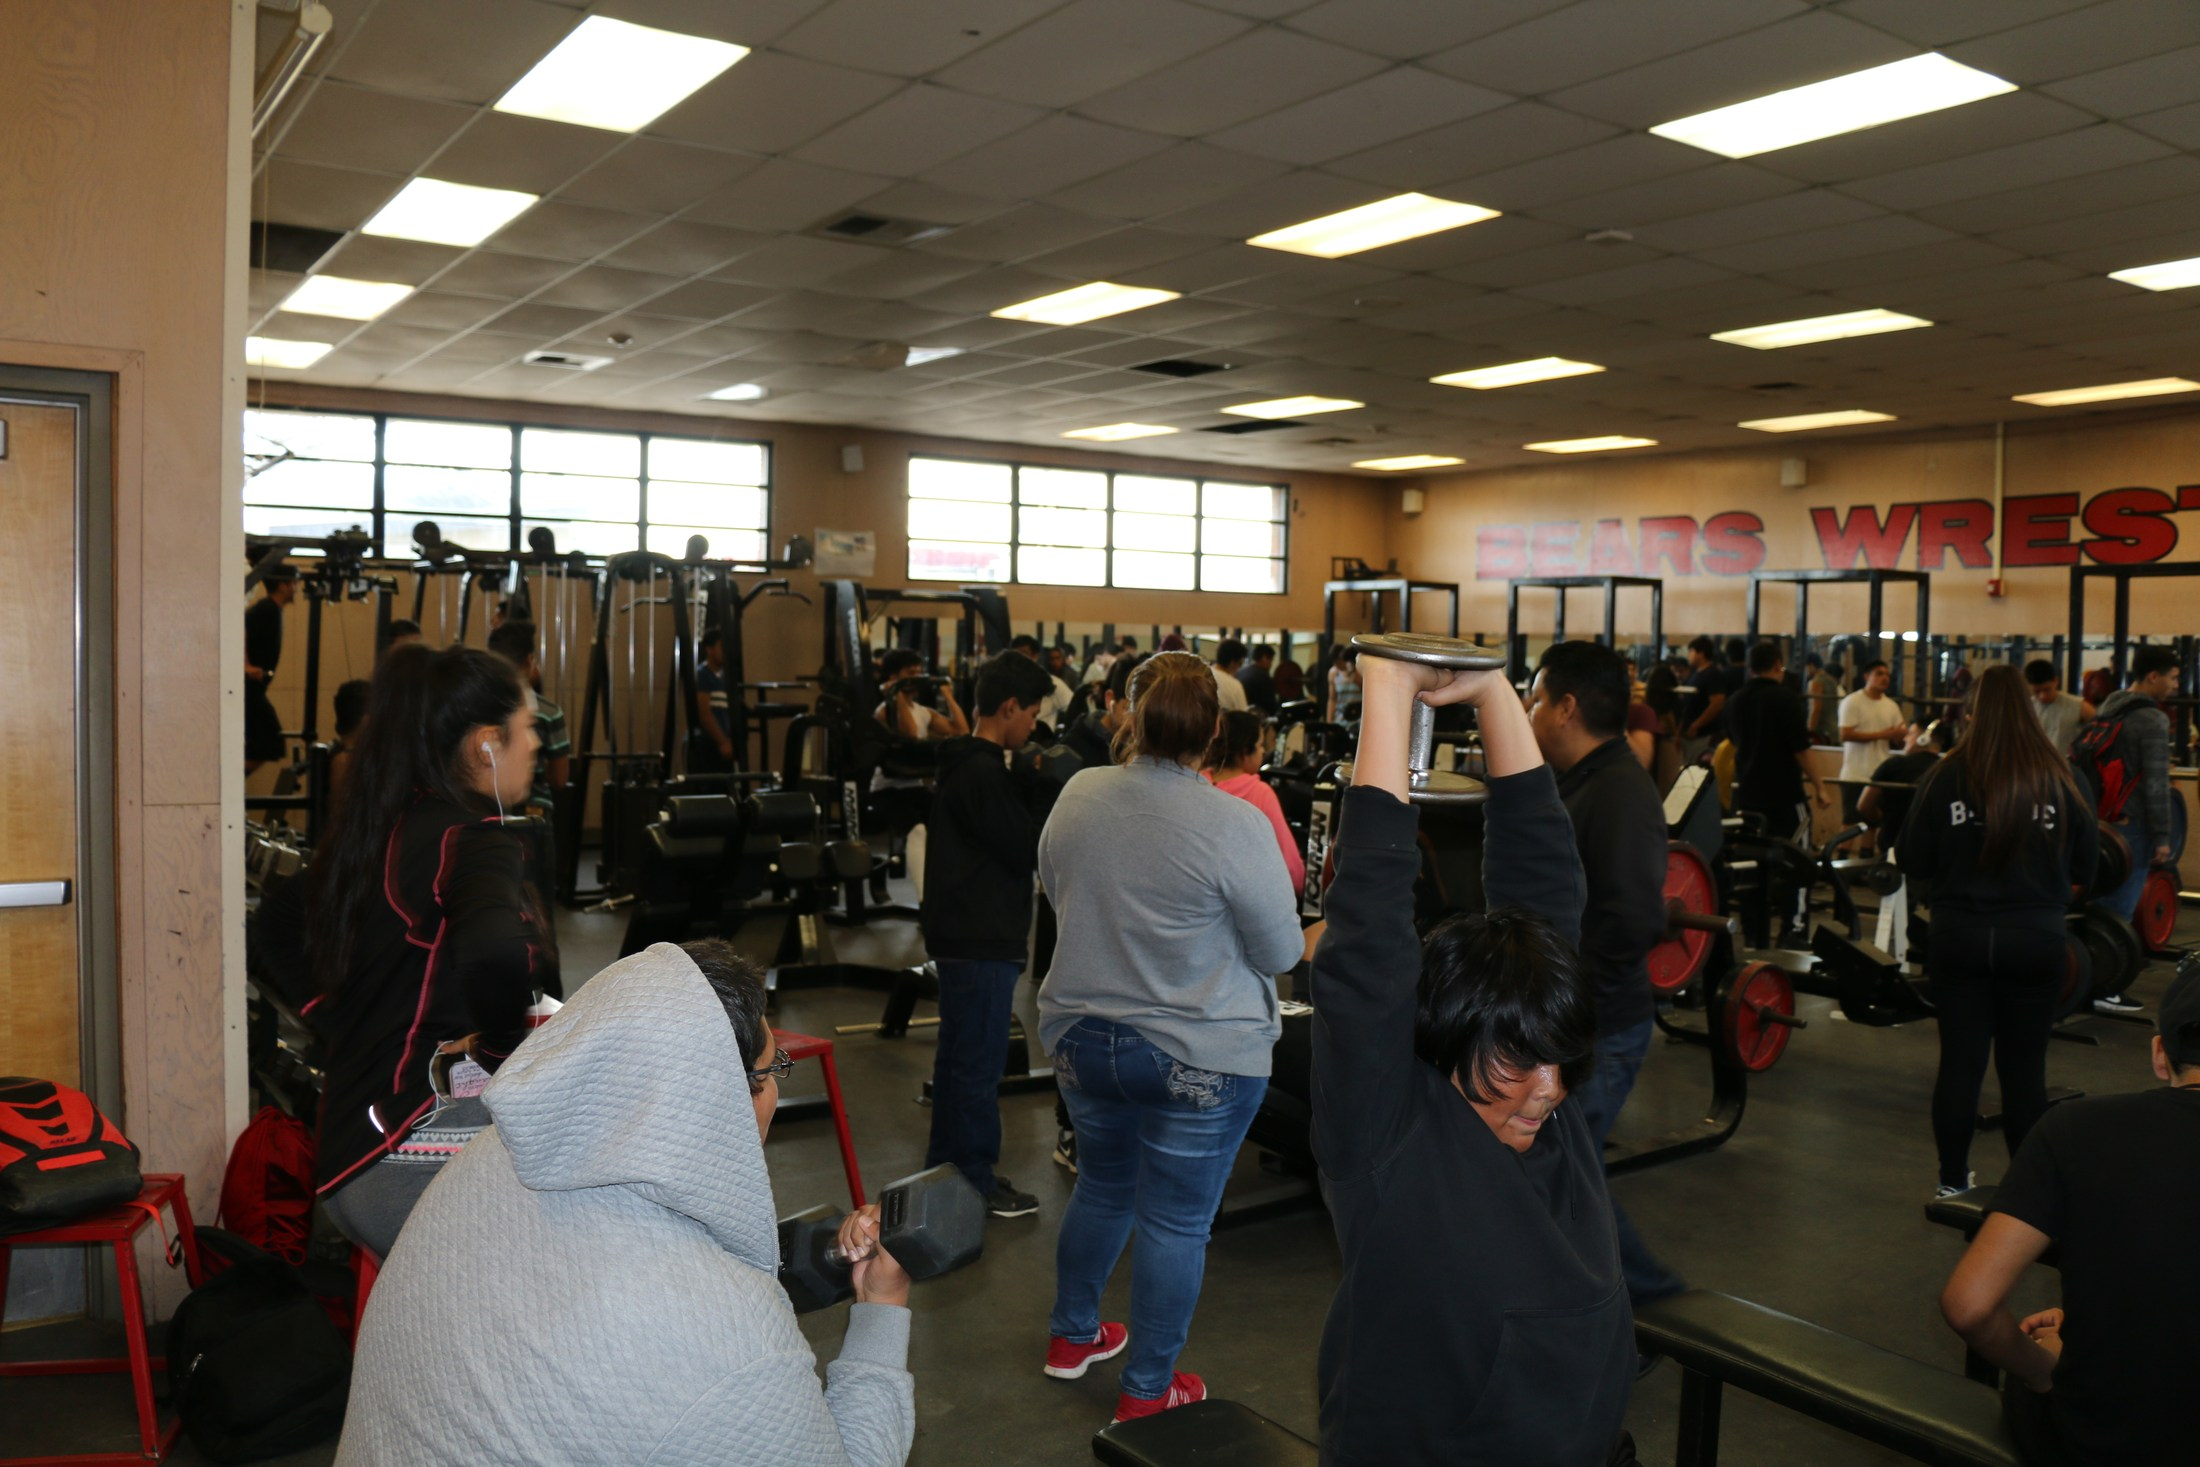 Arvin High students in the after school program lifting weights in the weight room.